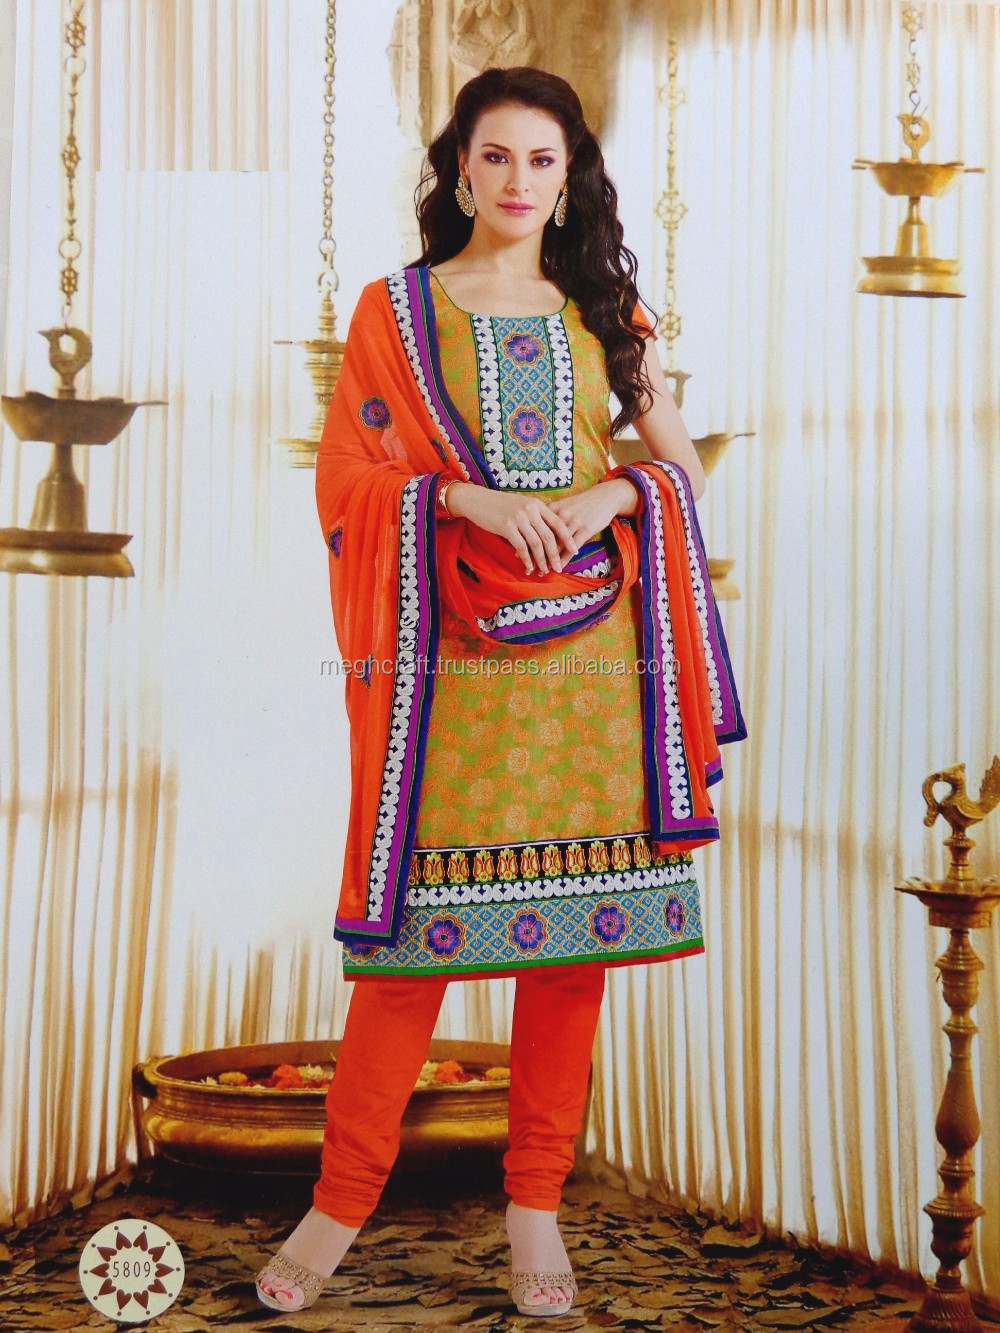 Fashion Wear Printed Salwar Kameez - French Crepe Material Suit ...